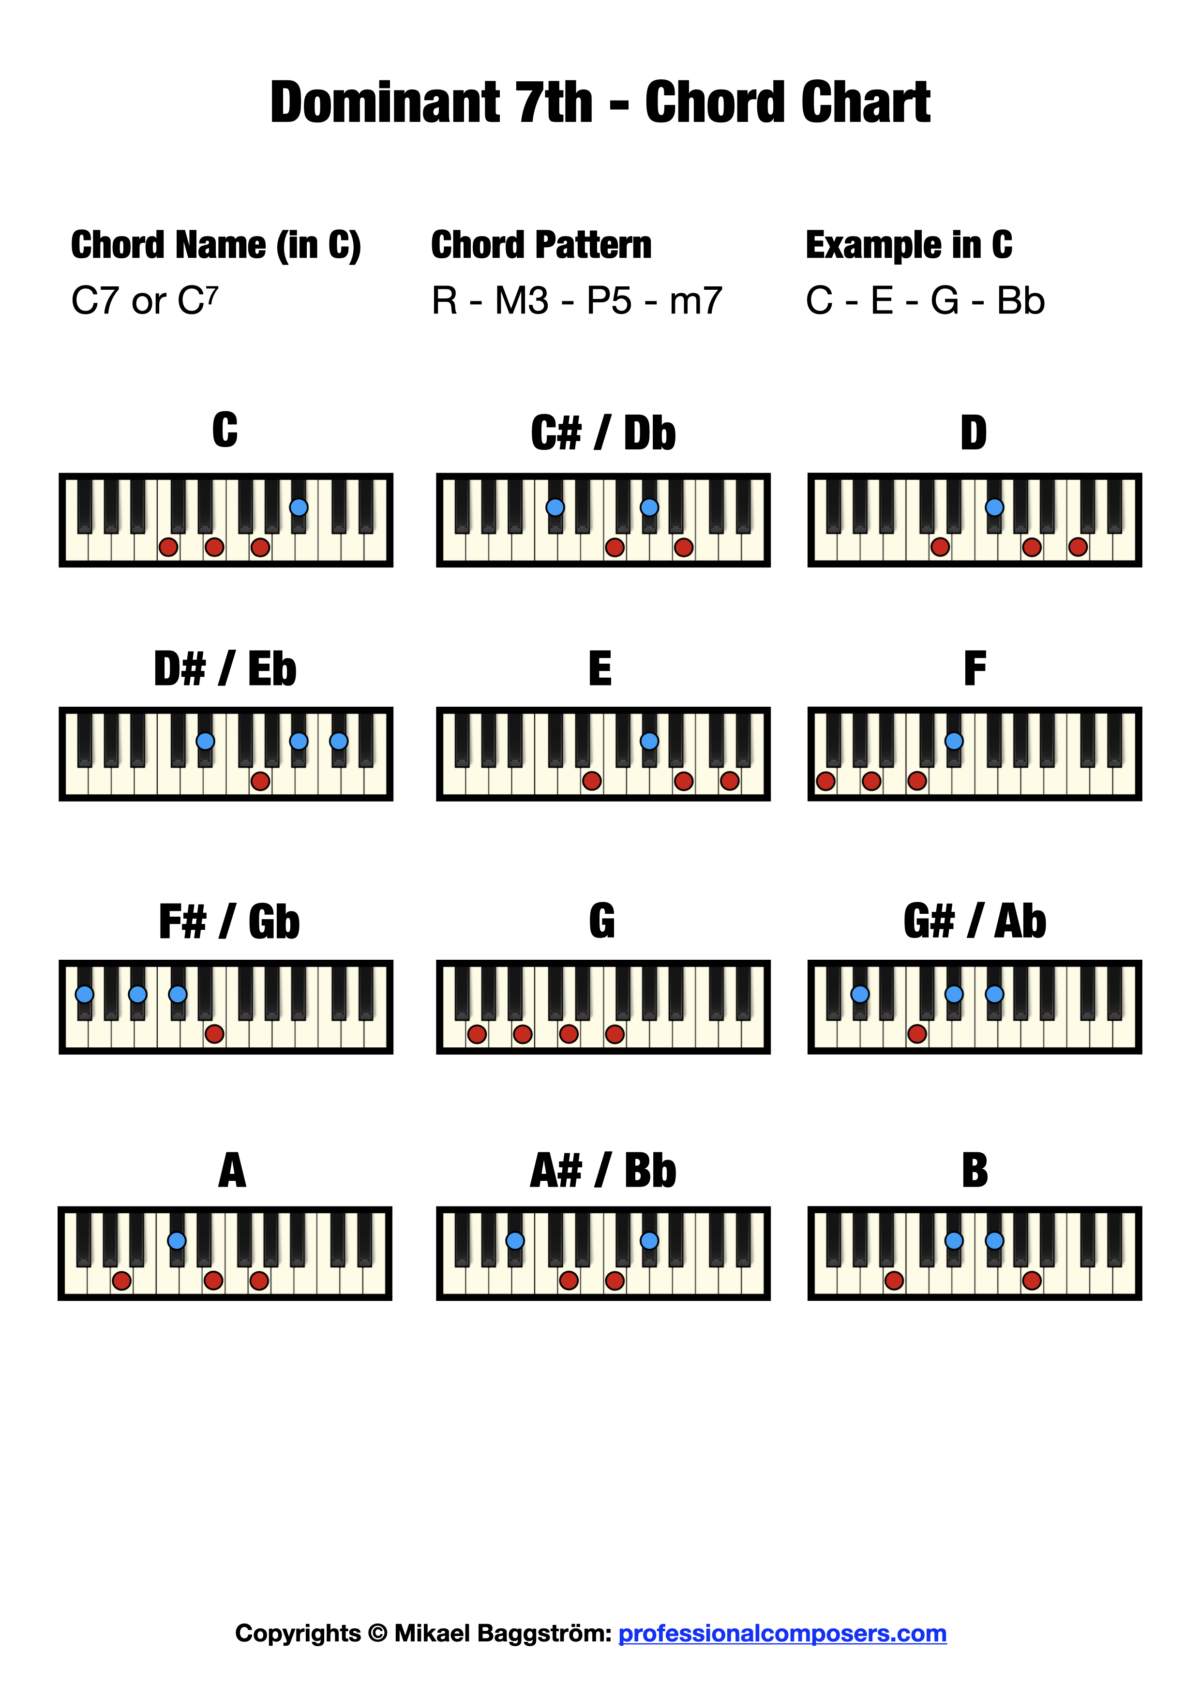 Dominant 7th Chord Chart on Piano